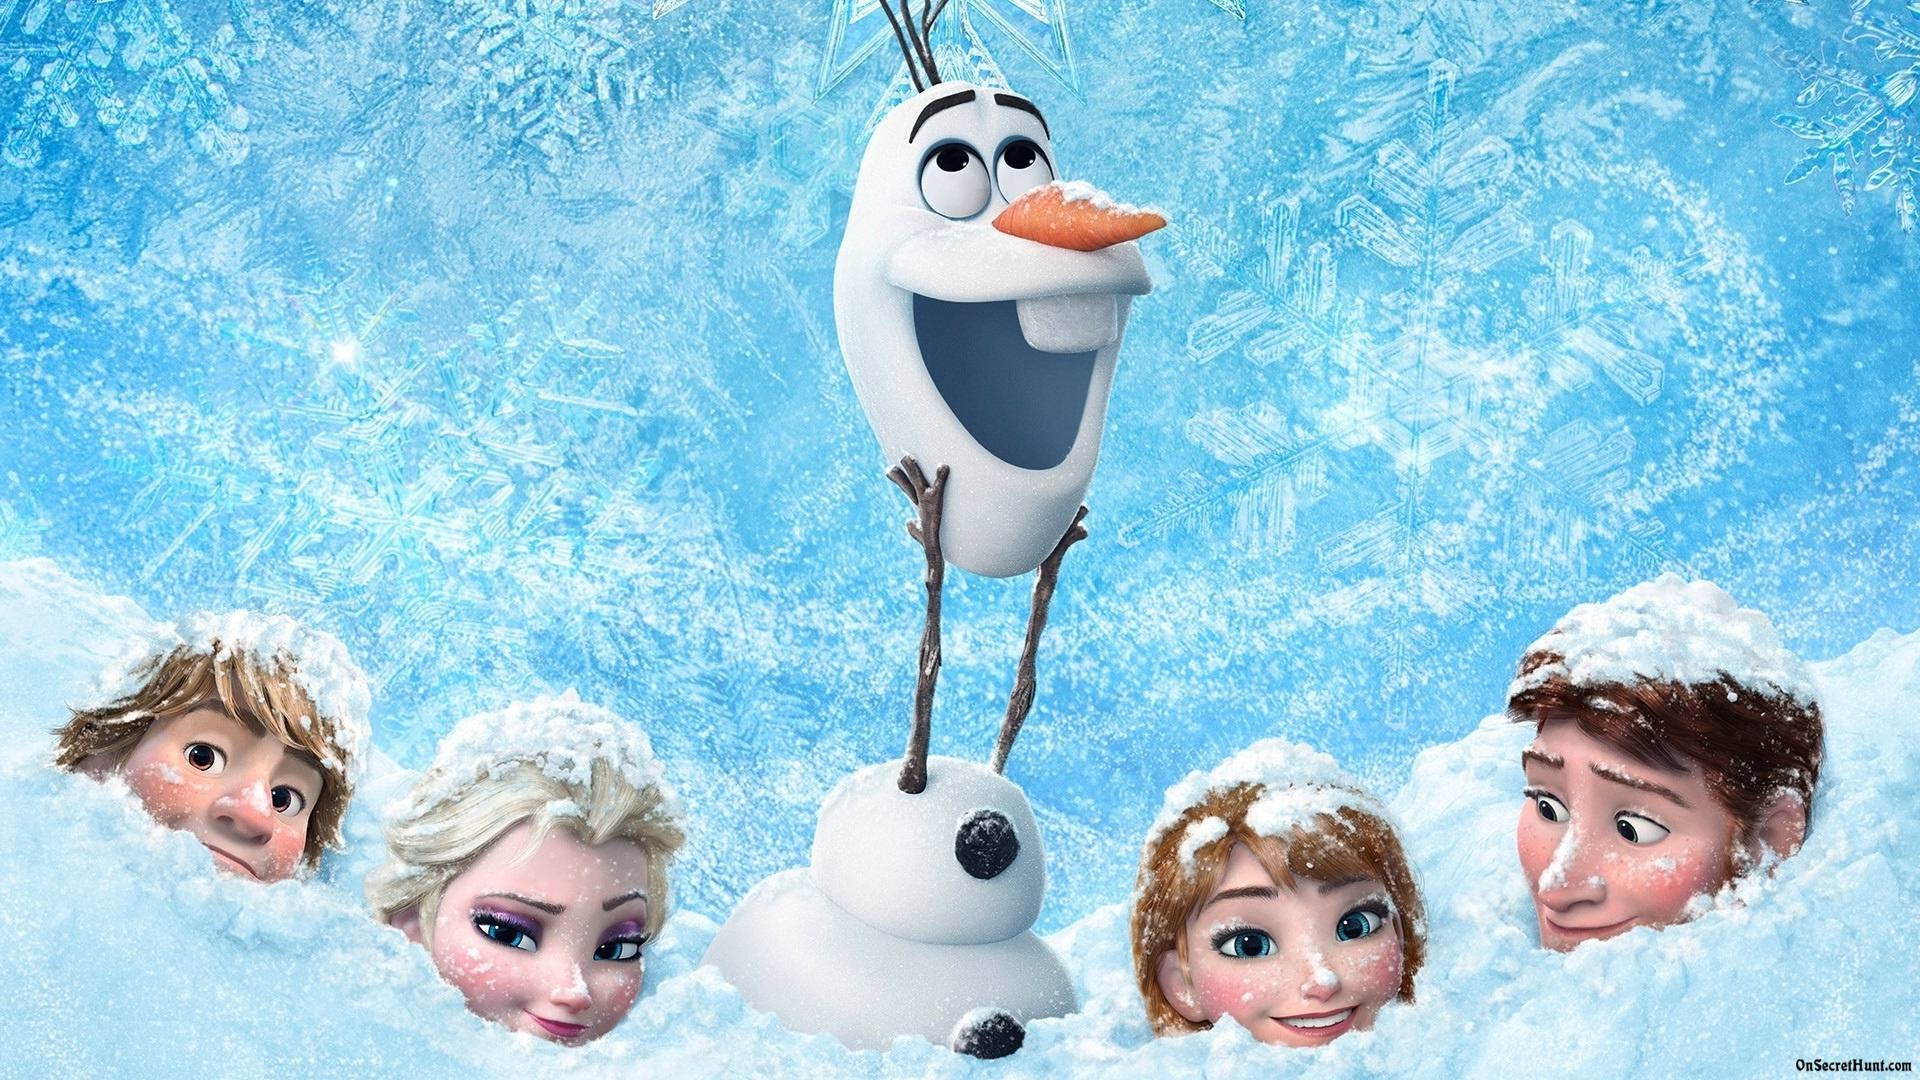 6 Ways Frozen Has Impacted the World In Honor of Its e Year